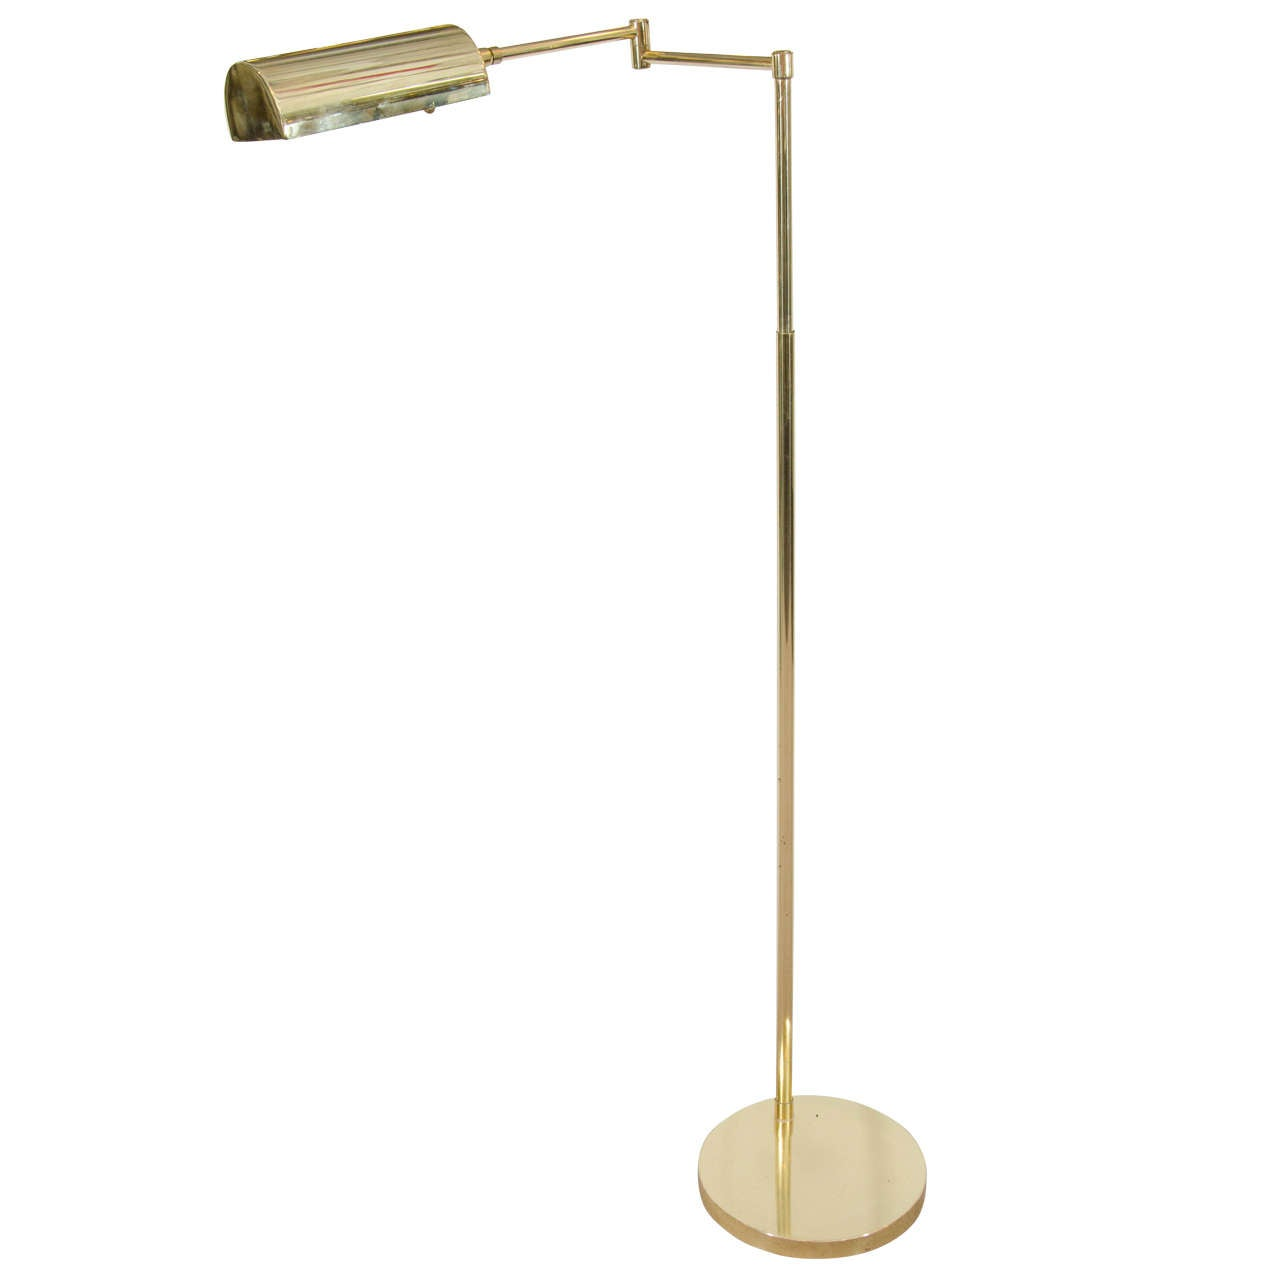 Midcentury koch and lowy swing arm adjustable brass floor lamp at midcentury koch and lowy swing arm adjustable brass floor lamp for sale mozeypictures Gallery